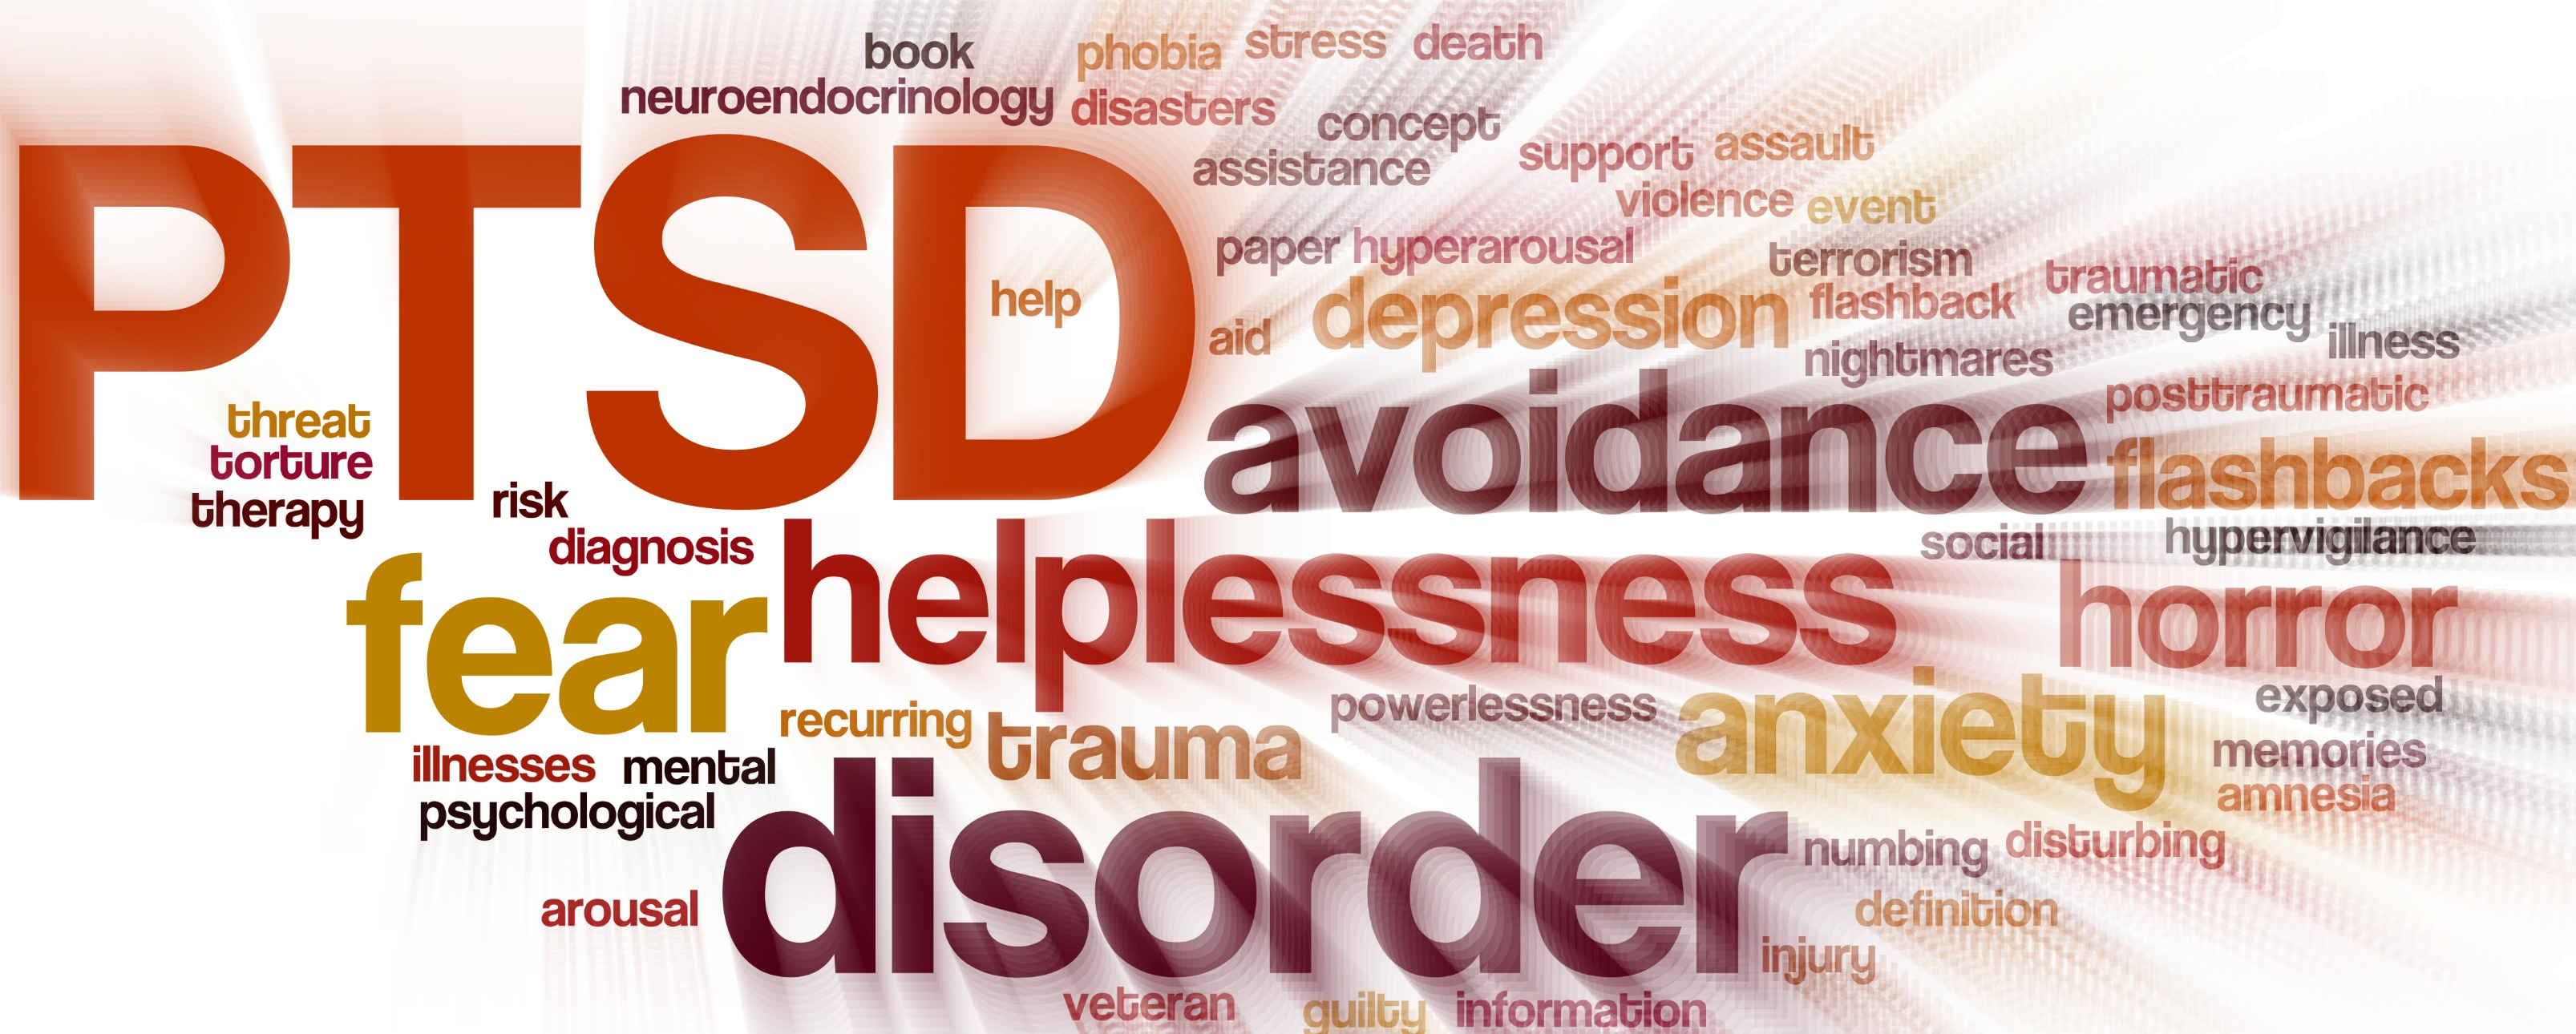 PTSD: PTSD What Is It And Do I Have It?